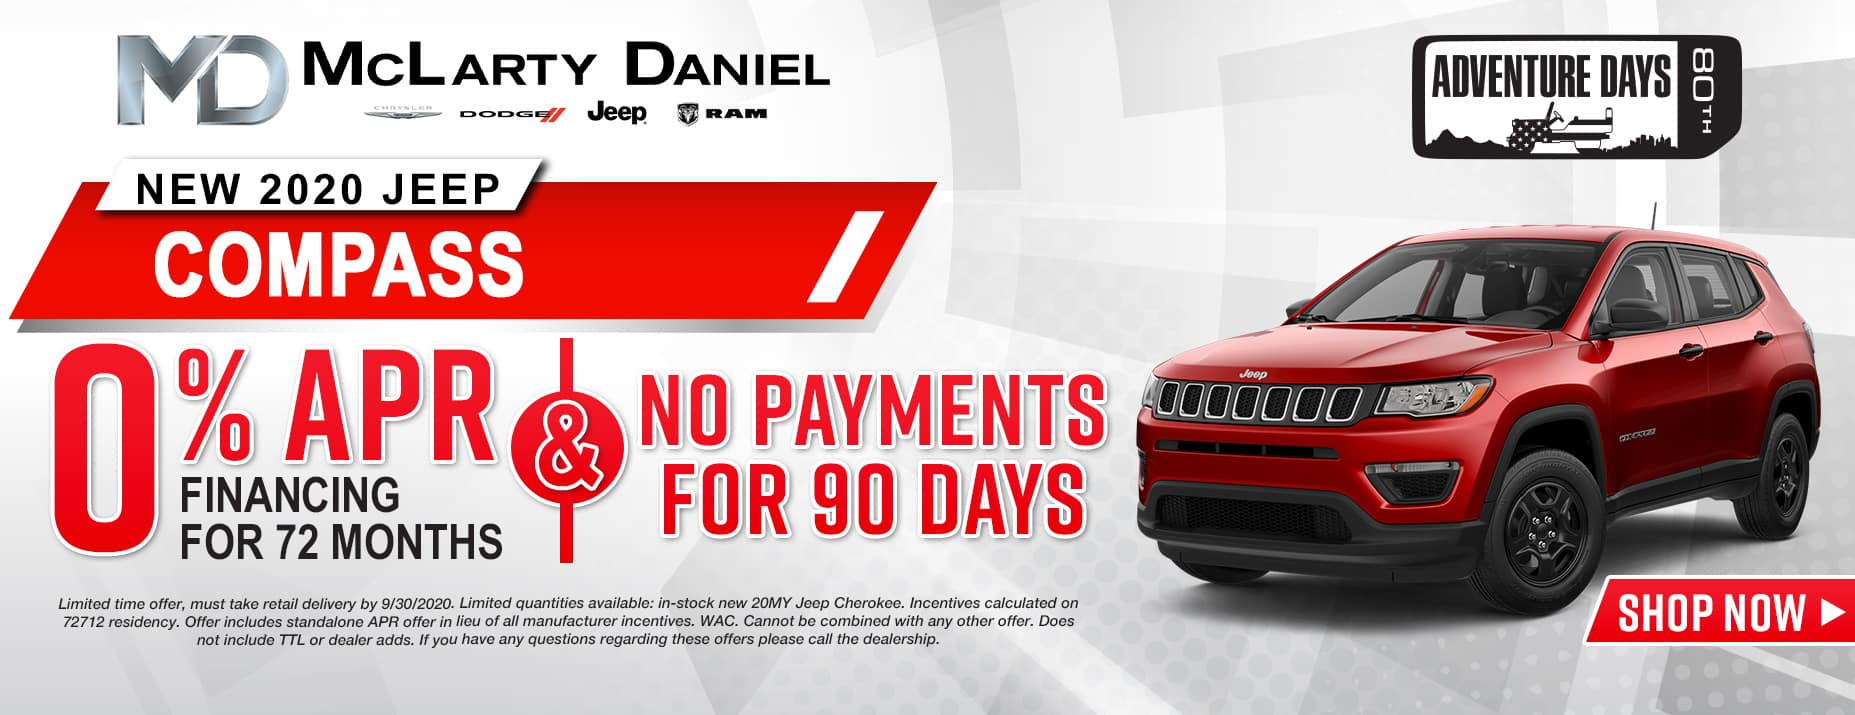 0% APR for 72 months and NO PAYMENTS FOR 90 DAYS available on 2020 Jeep Compass!